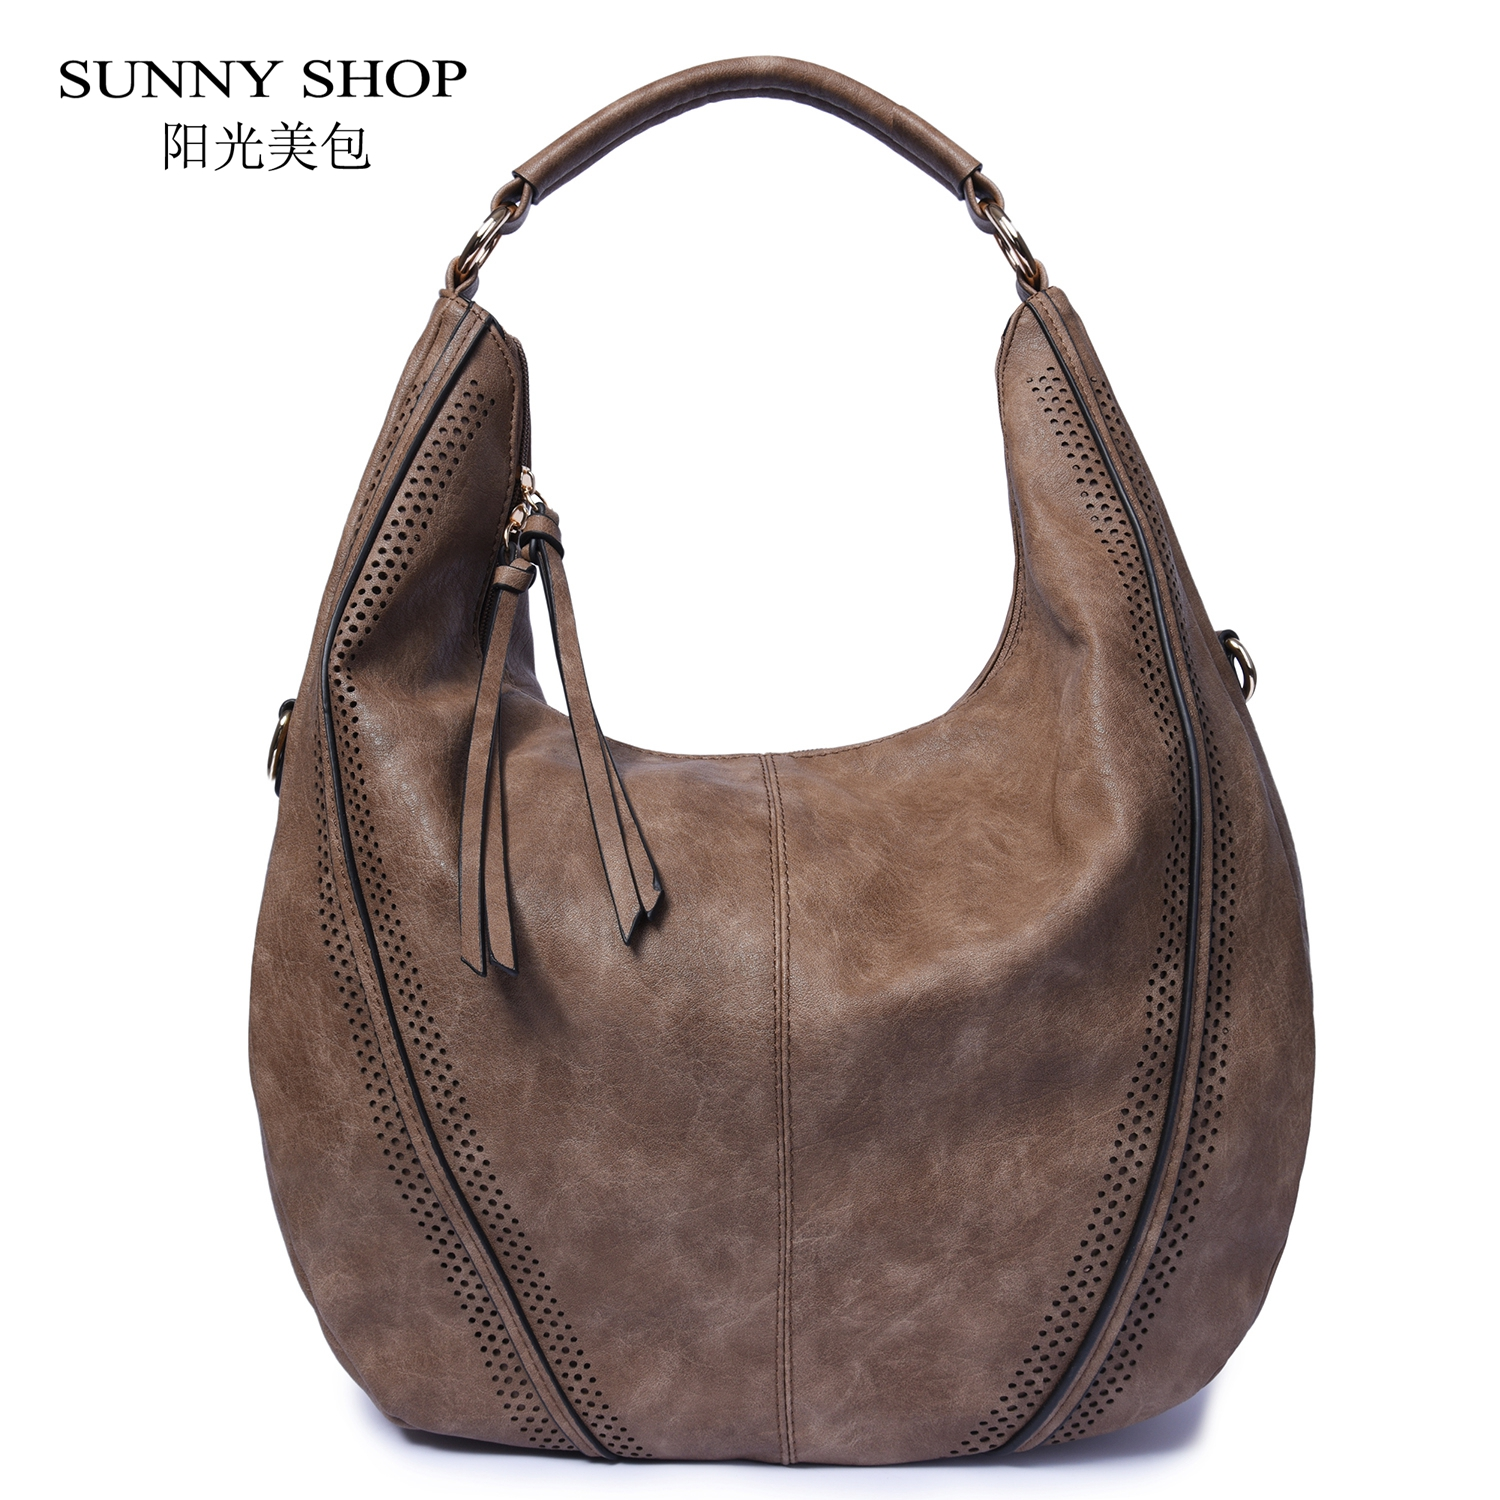 SUNNY SHOP Vintage Soft PU Leather Hobos American Fashion Large Tote Bag Tassel Hollow Out High